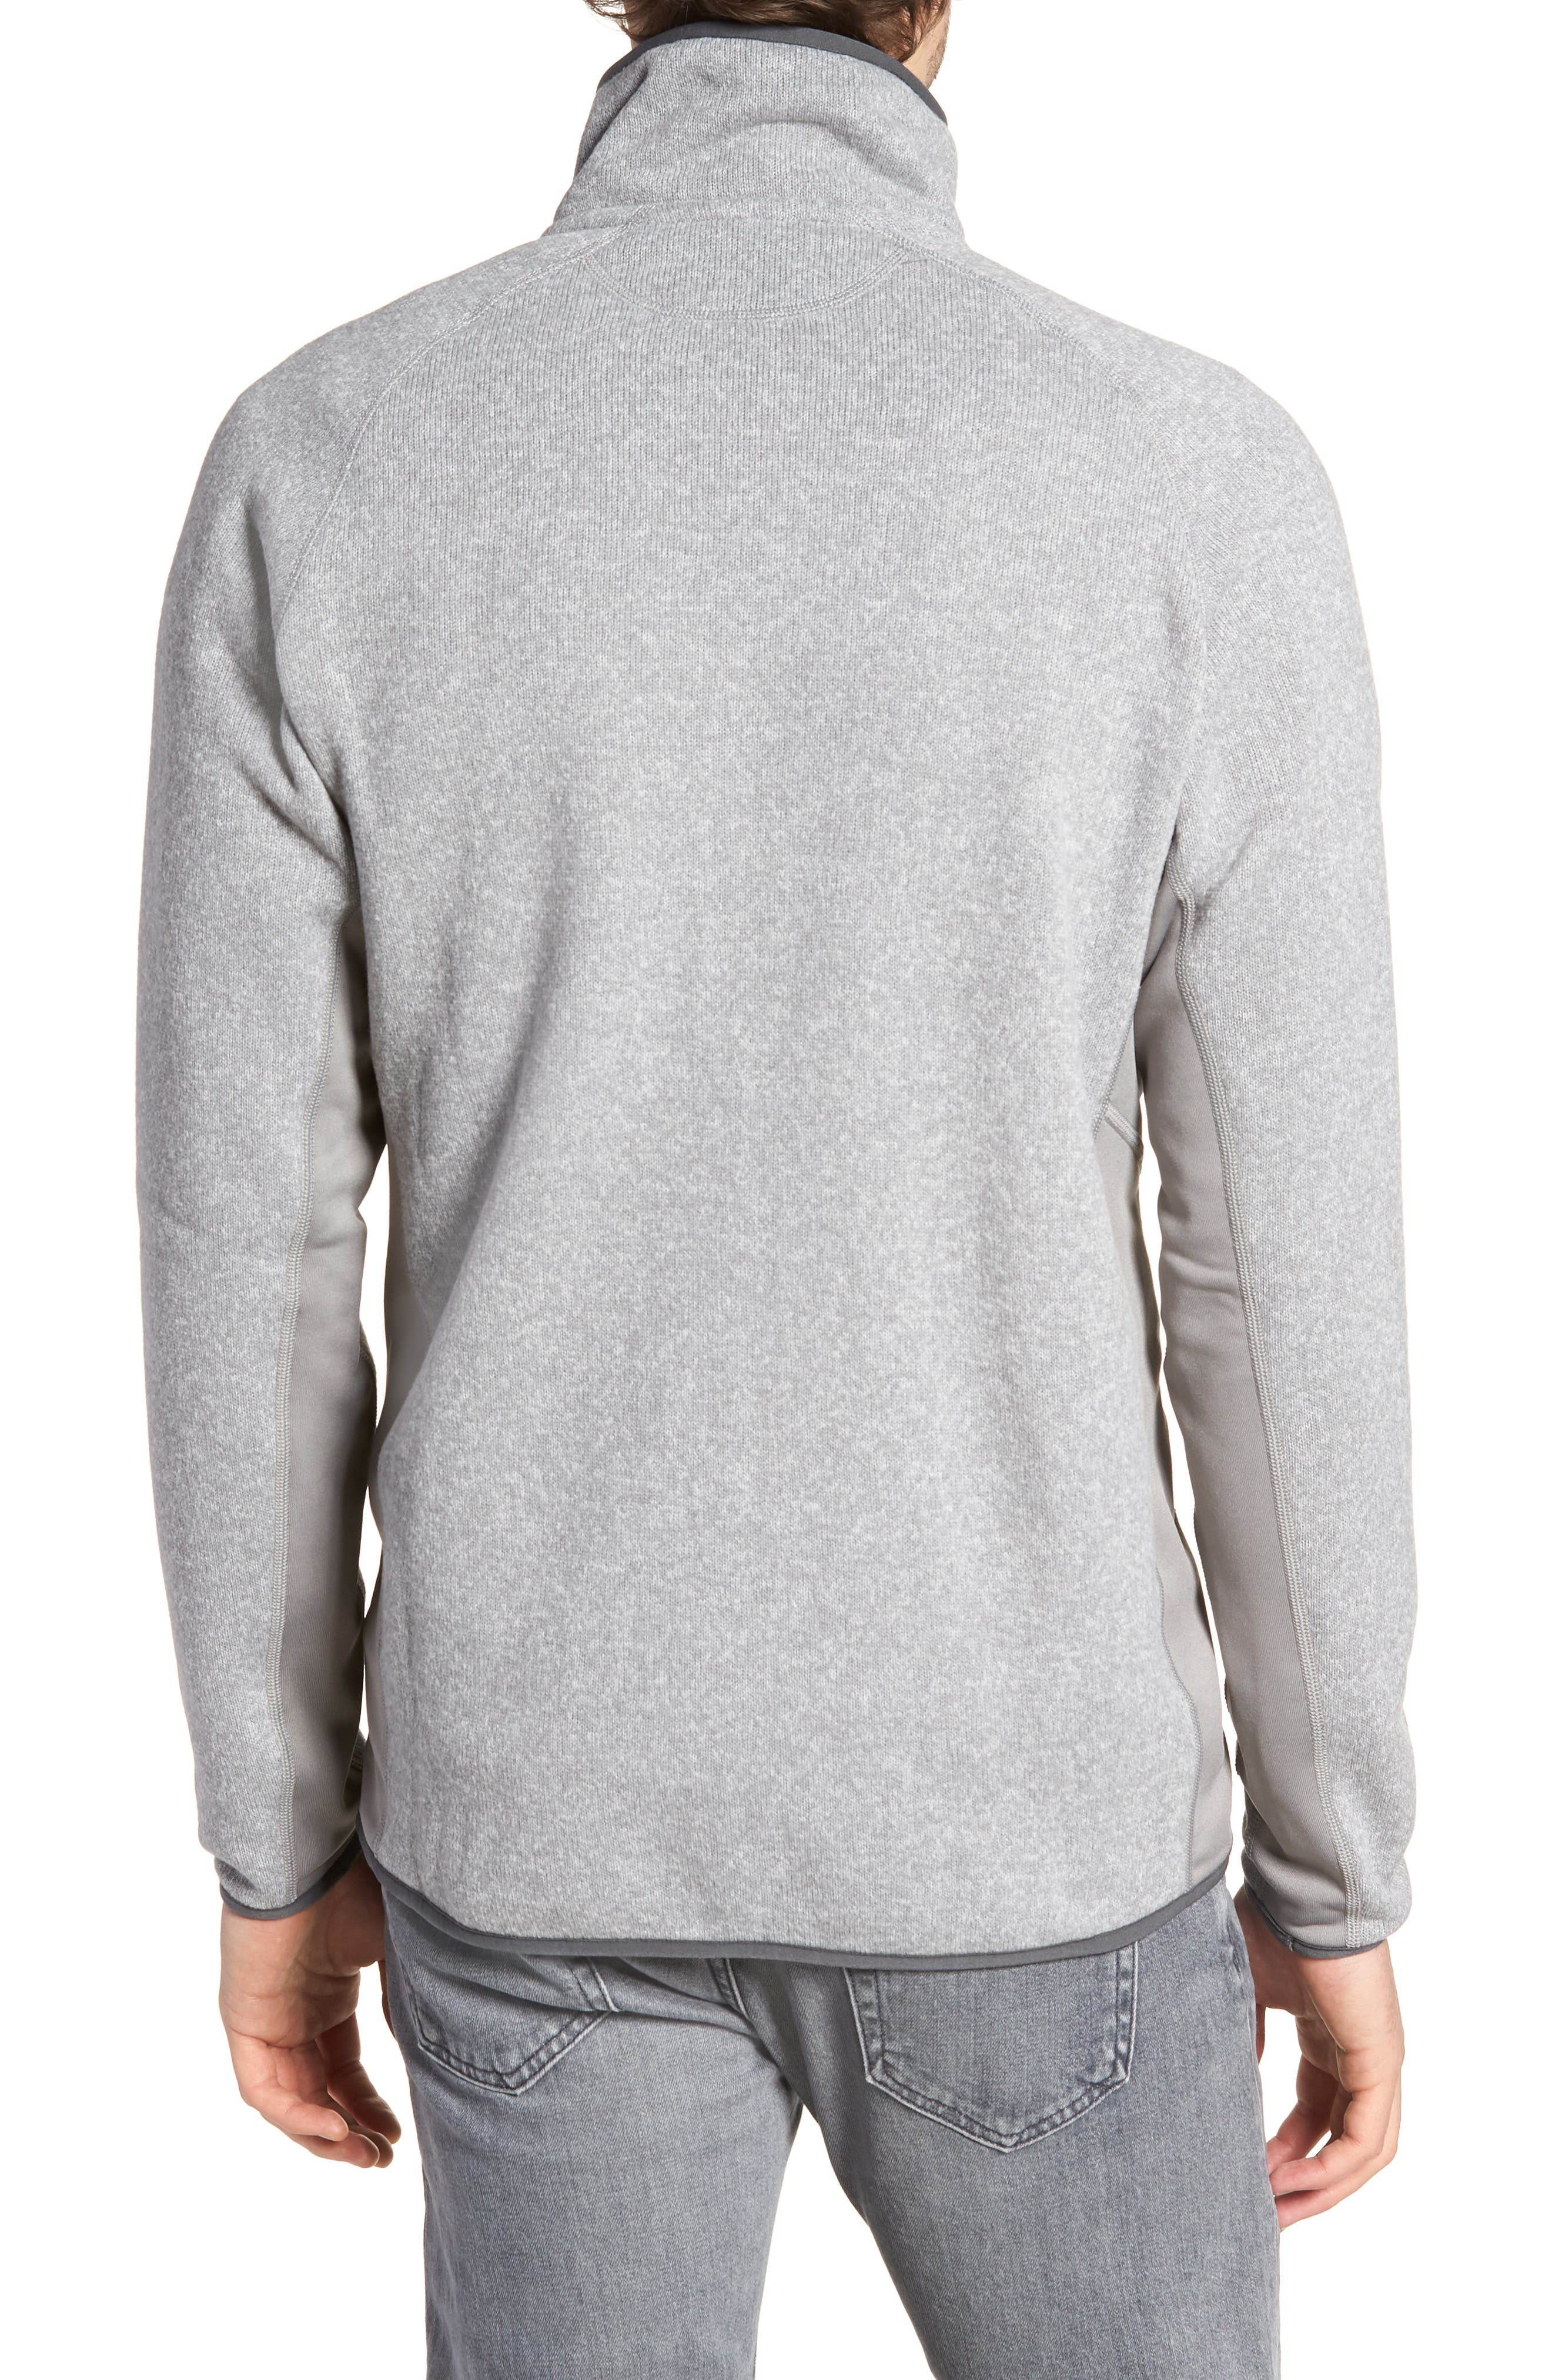 Performance Pullover,                             Alternate thumbnail 2, color,                             Feather Grey